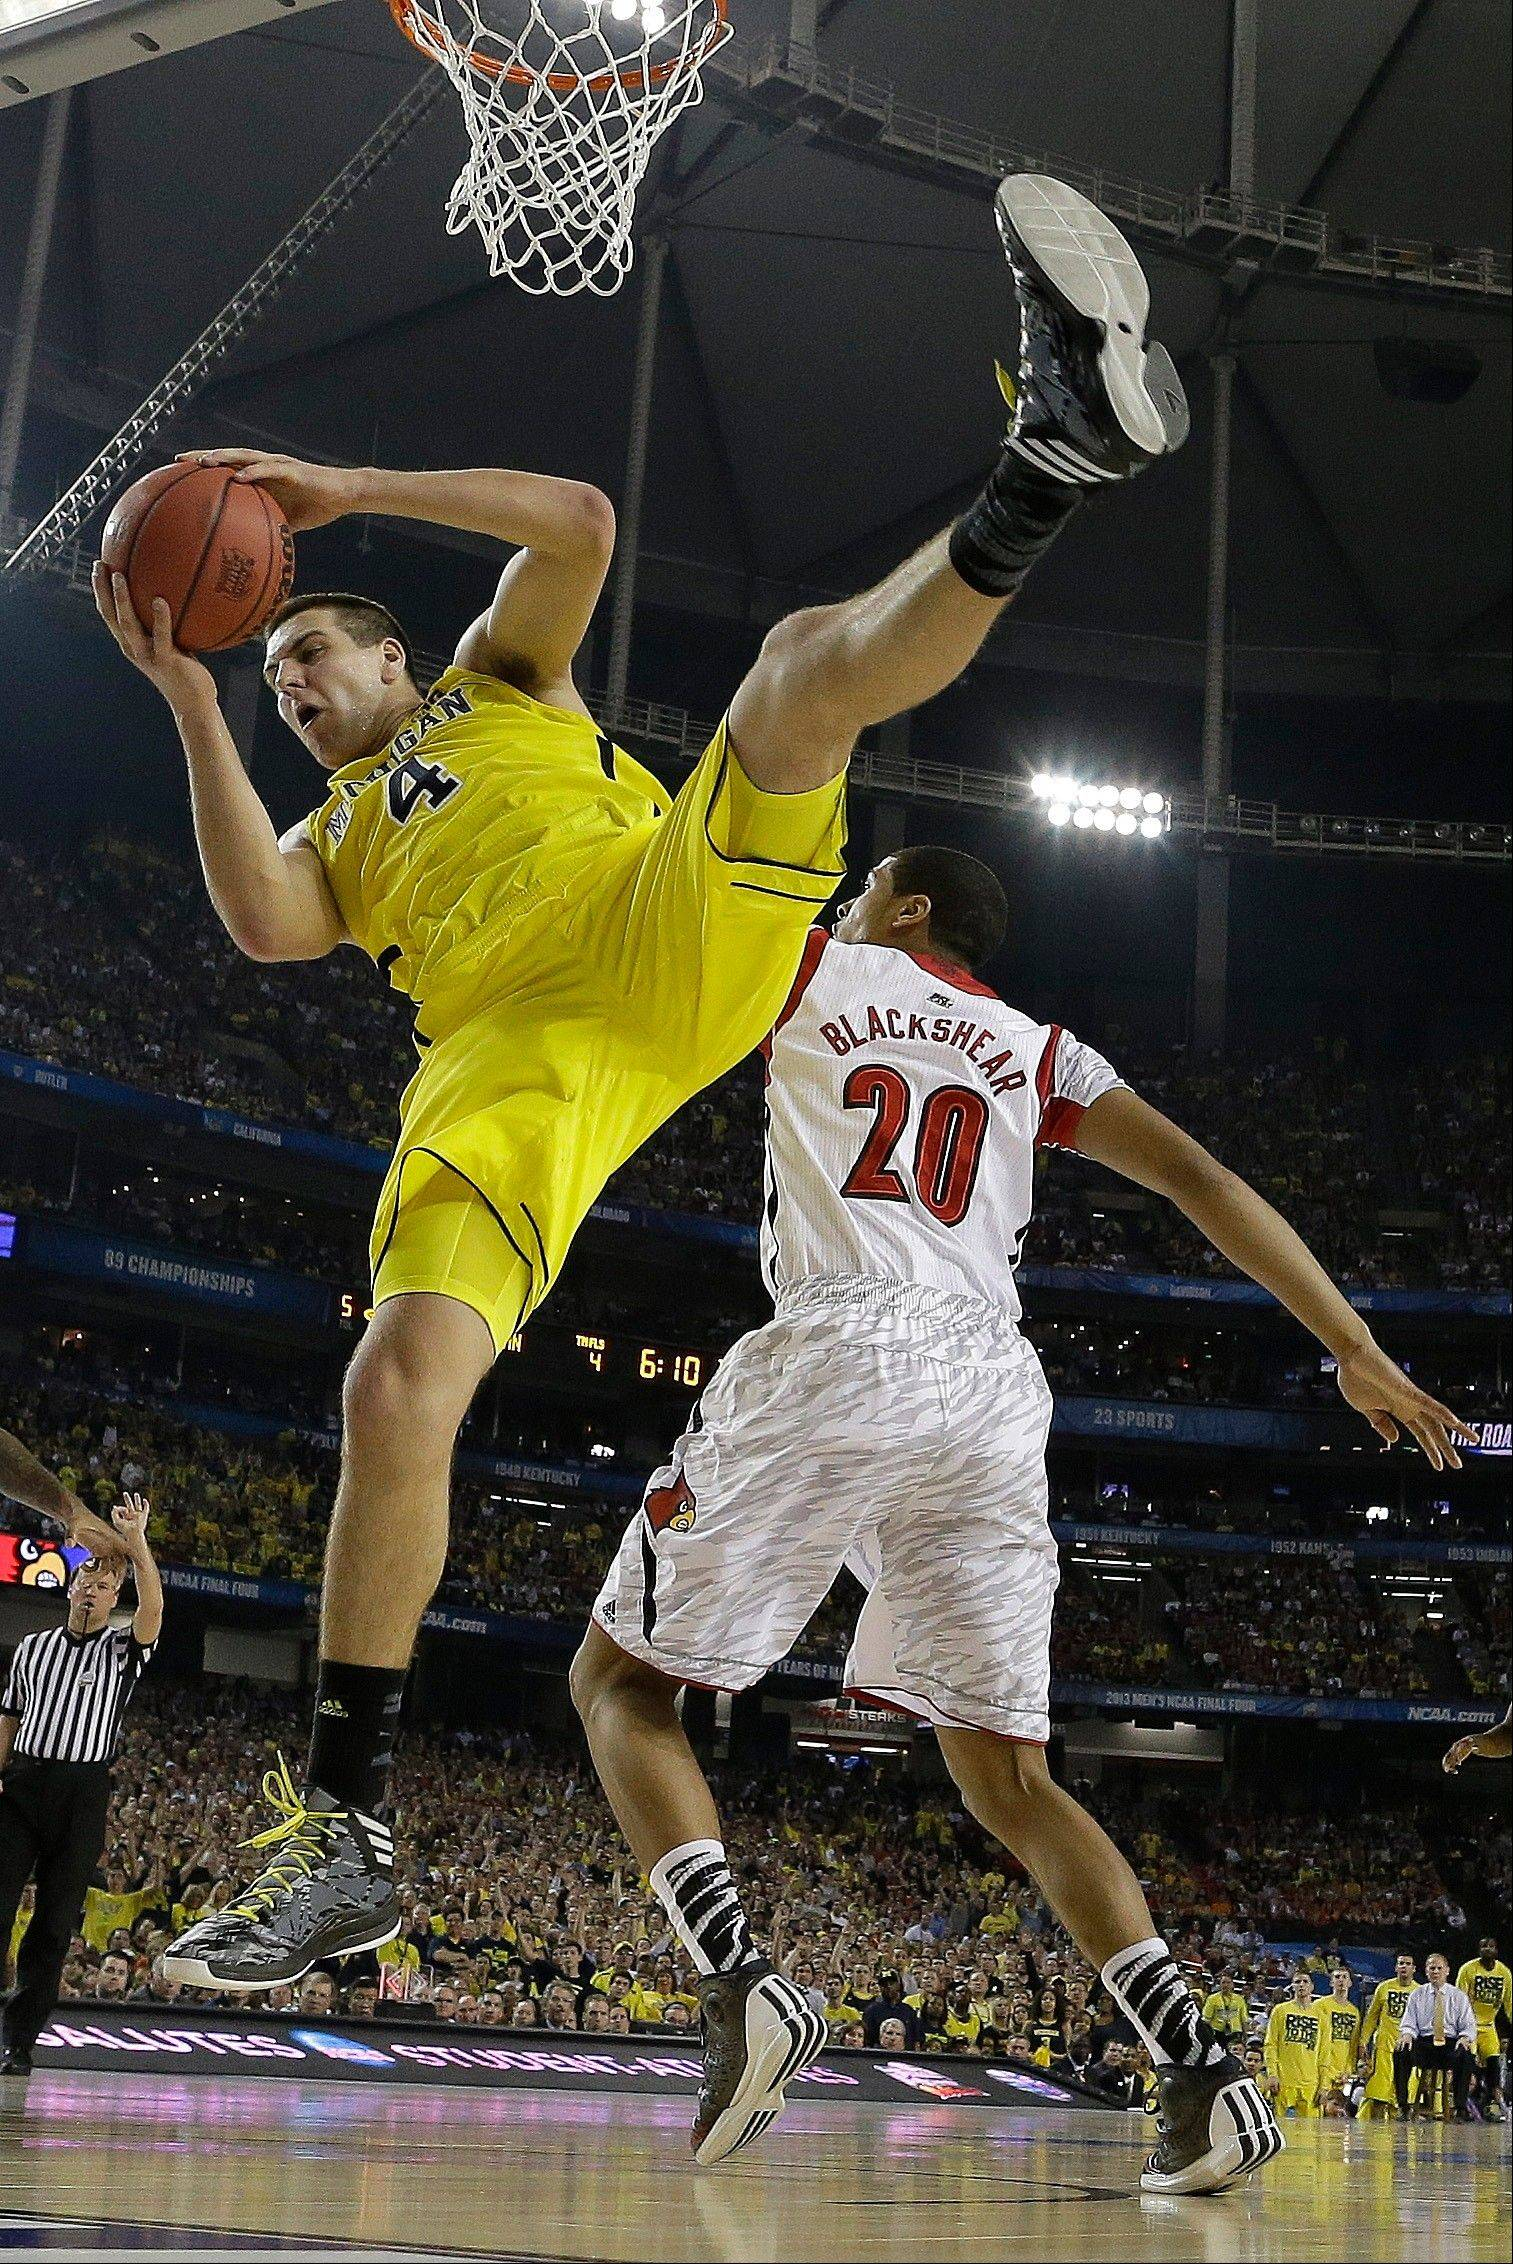 Michigan forward Mitch McGary (4) comes down with the rebound as Louisville guard/forward Wayne Blackshear (20) looks on during the first half of the NCAA Final Four tournament college basketball championship game Monday, April 8, 2013, in Atlanta.